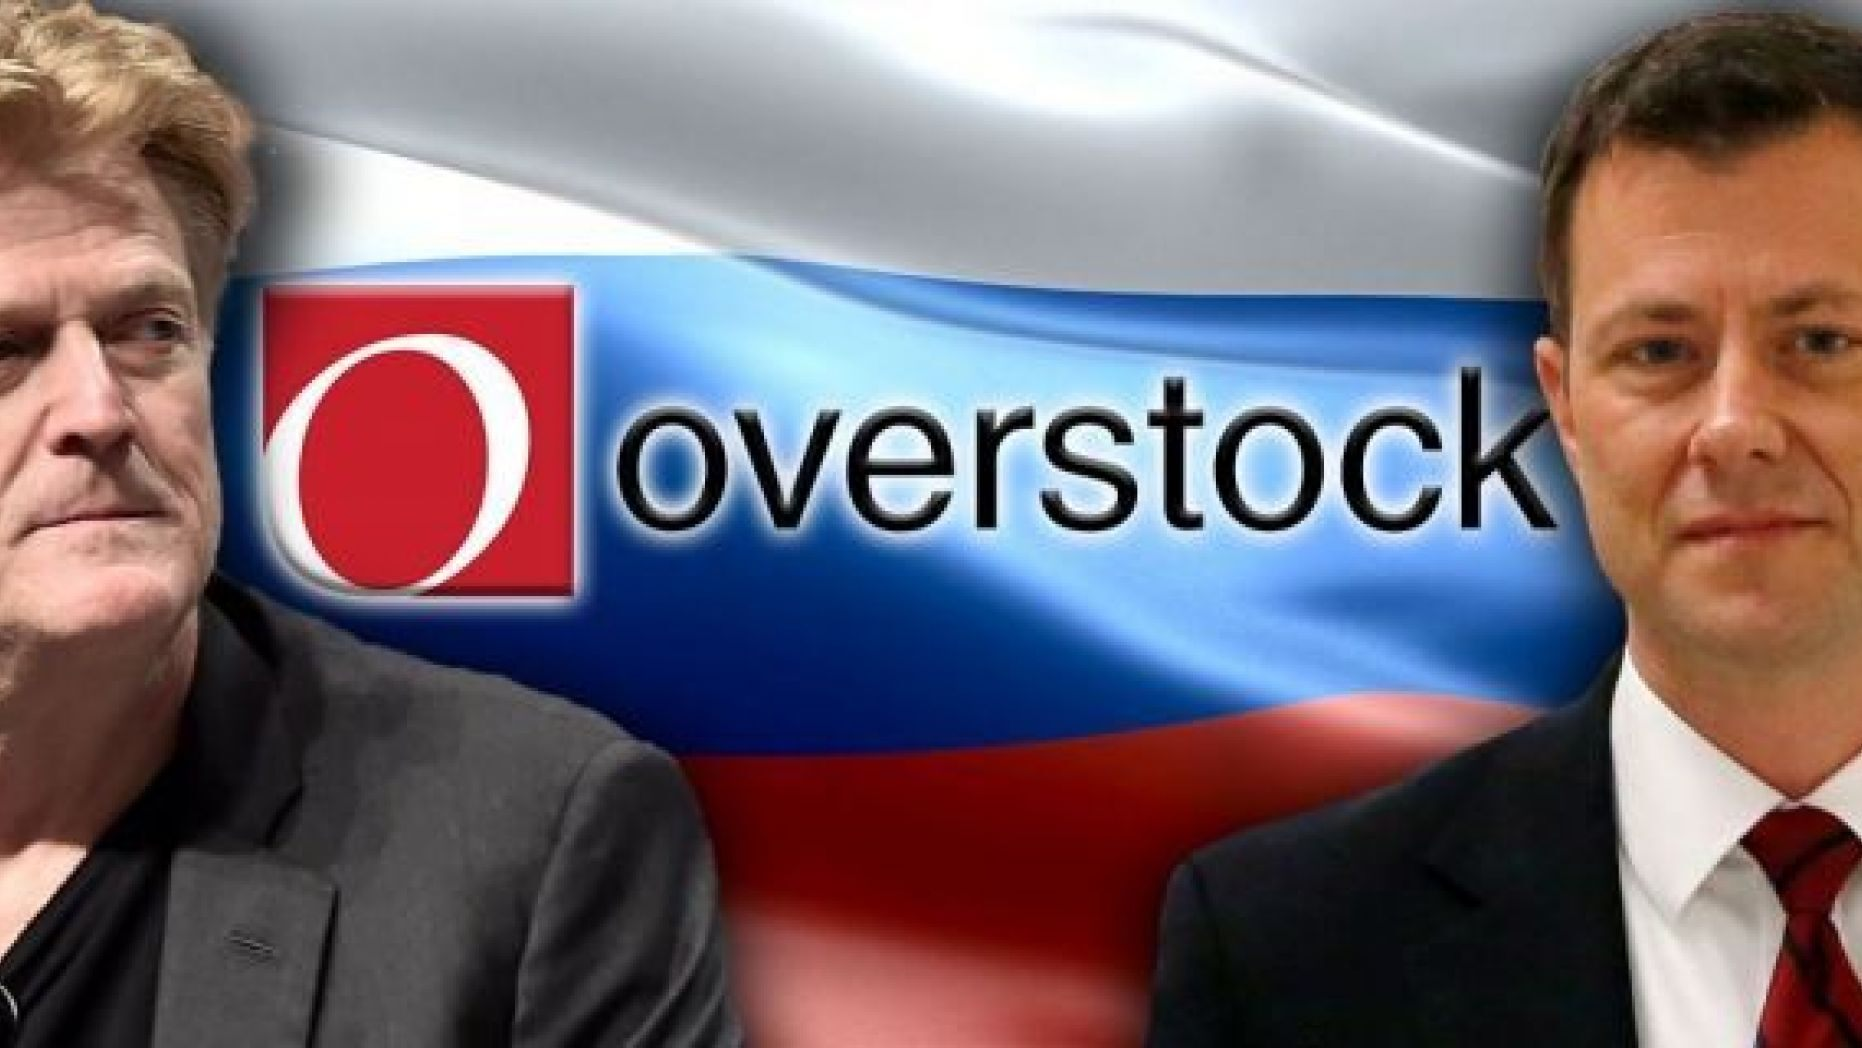 Overstock CEO resigns amid ties to Russia probe, says he received 'fishy orders' from ex-FBI official Strzok